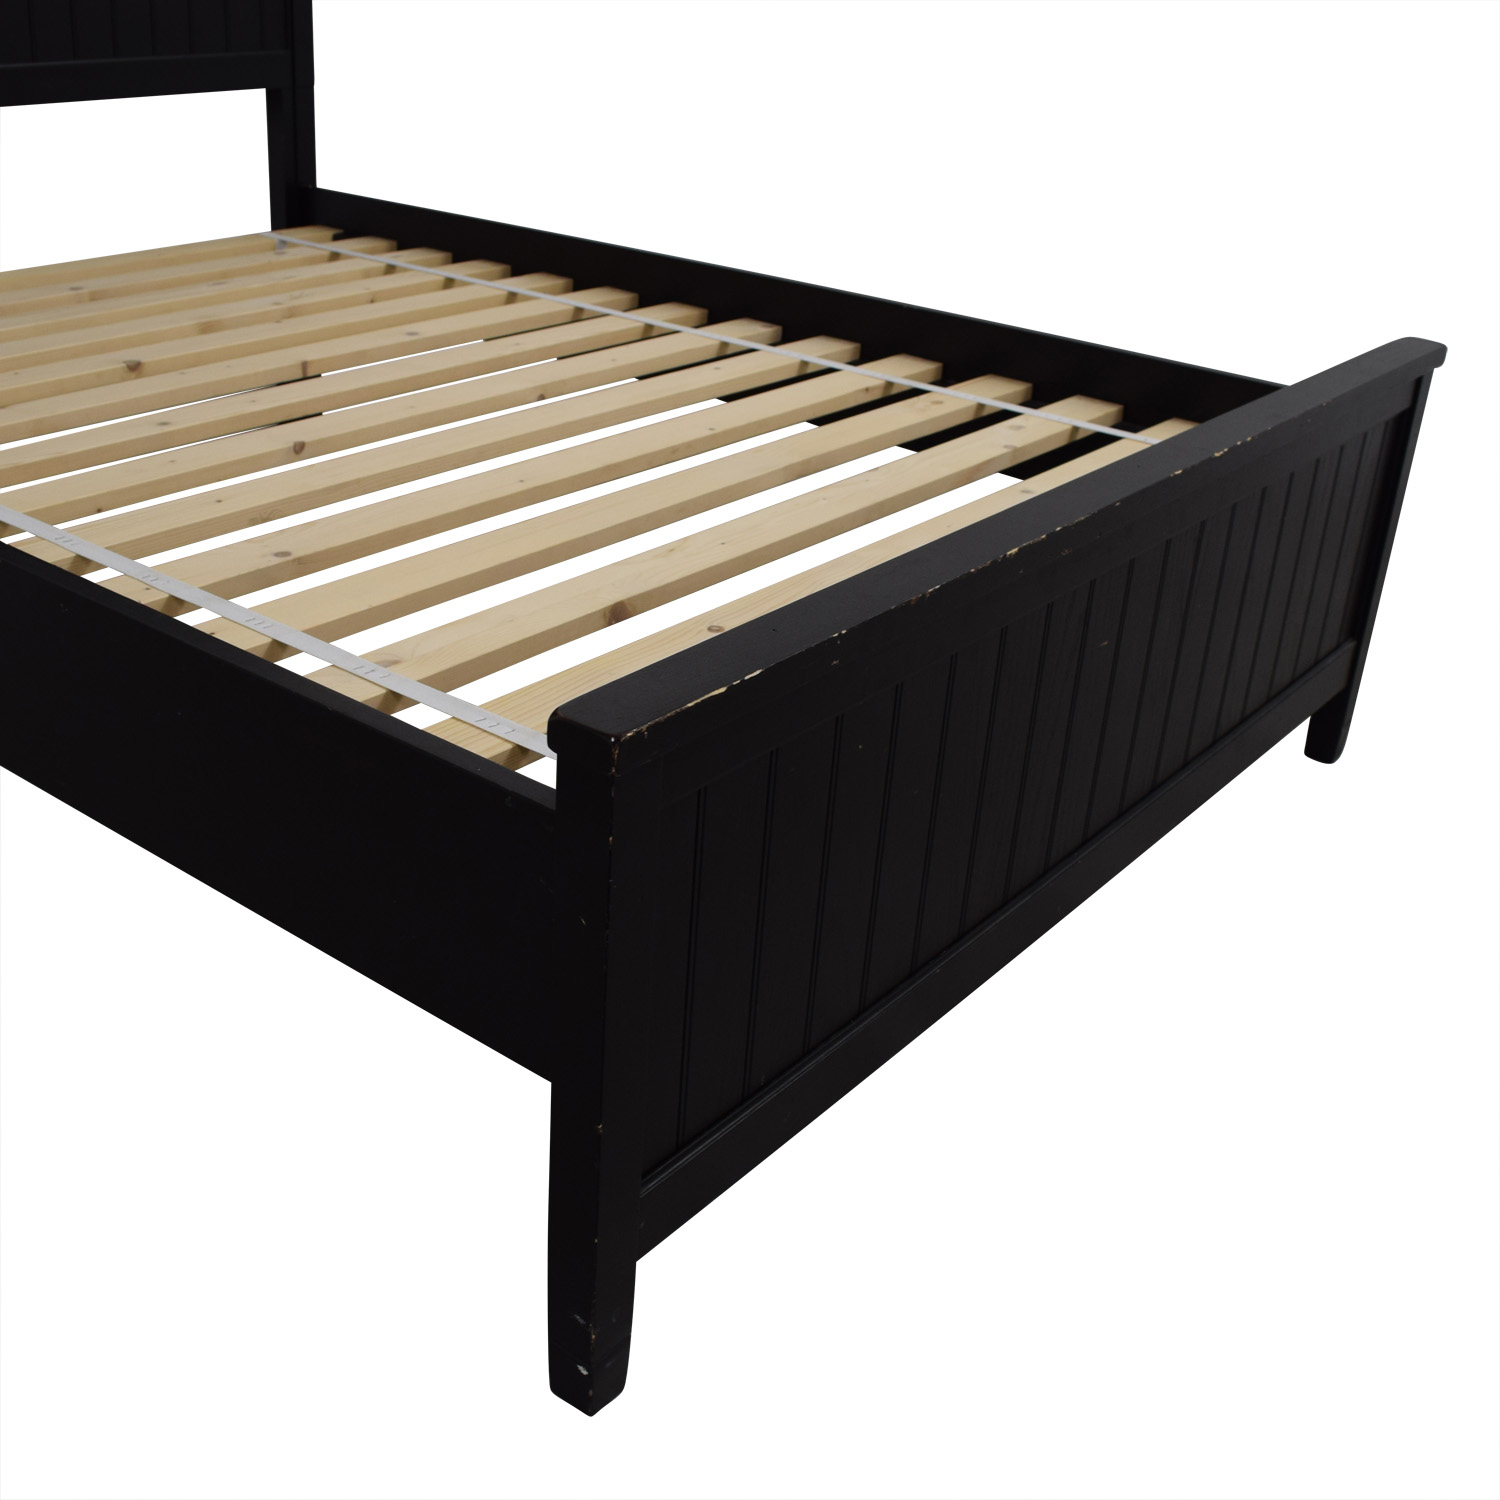 Pottery Barn Pottery Barn Full Black Platform Bed dimensions